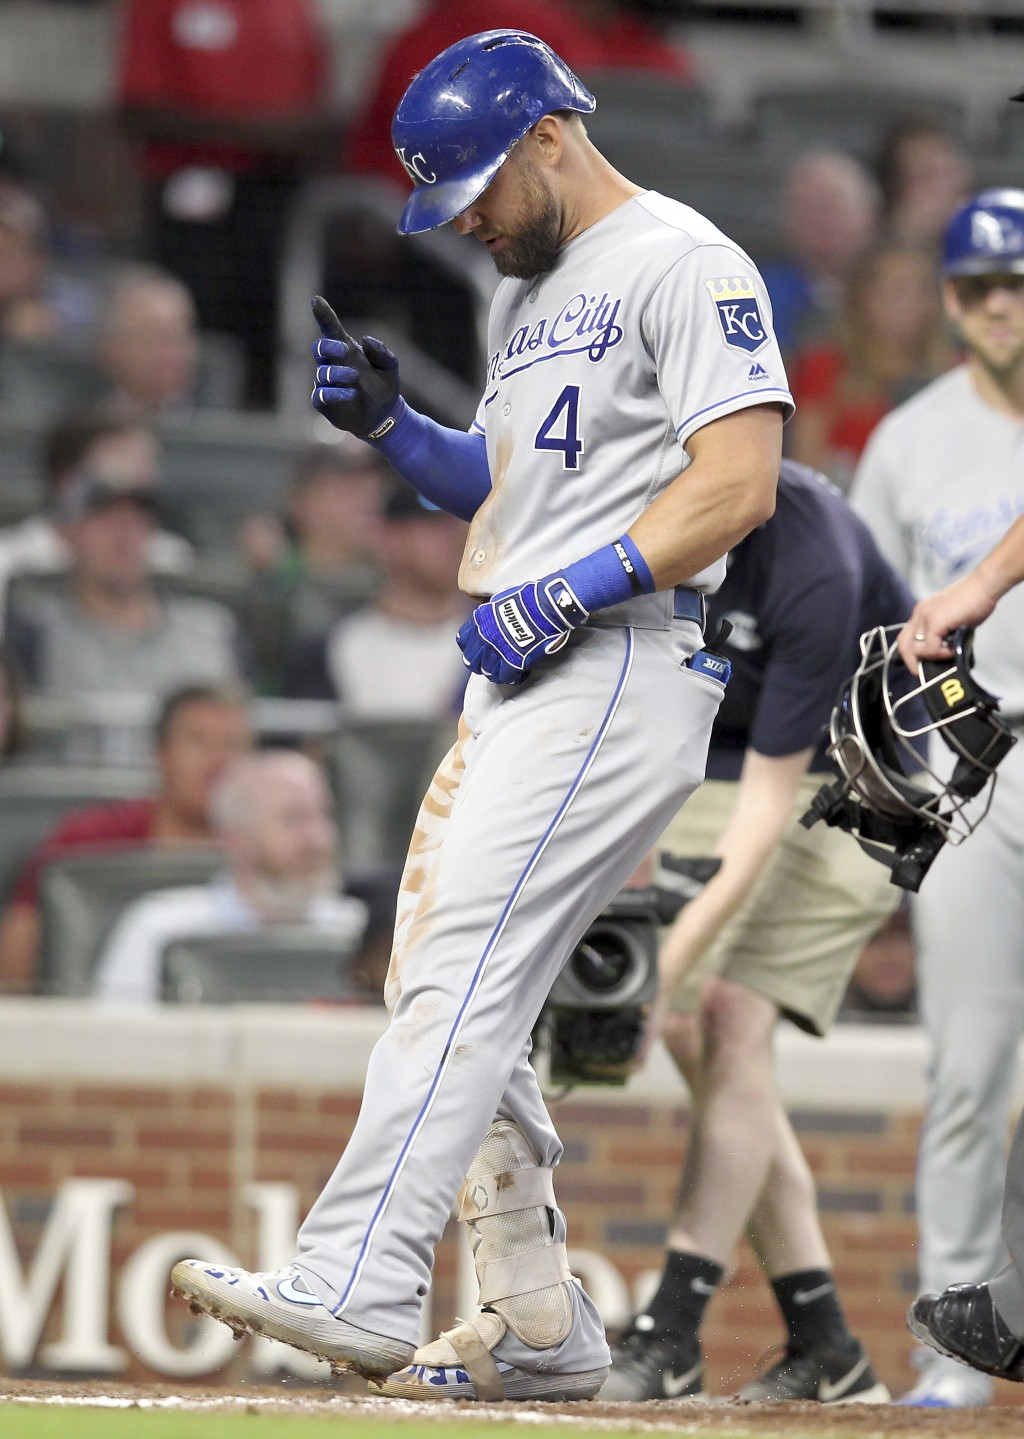 Kansas City Royals batter Alex Gordon touches home plate after a solo home run against the Atlanta Braves during the sixth inning of a baseball game T...